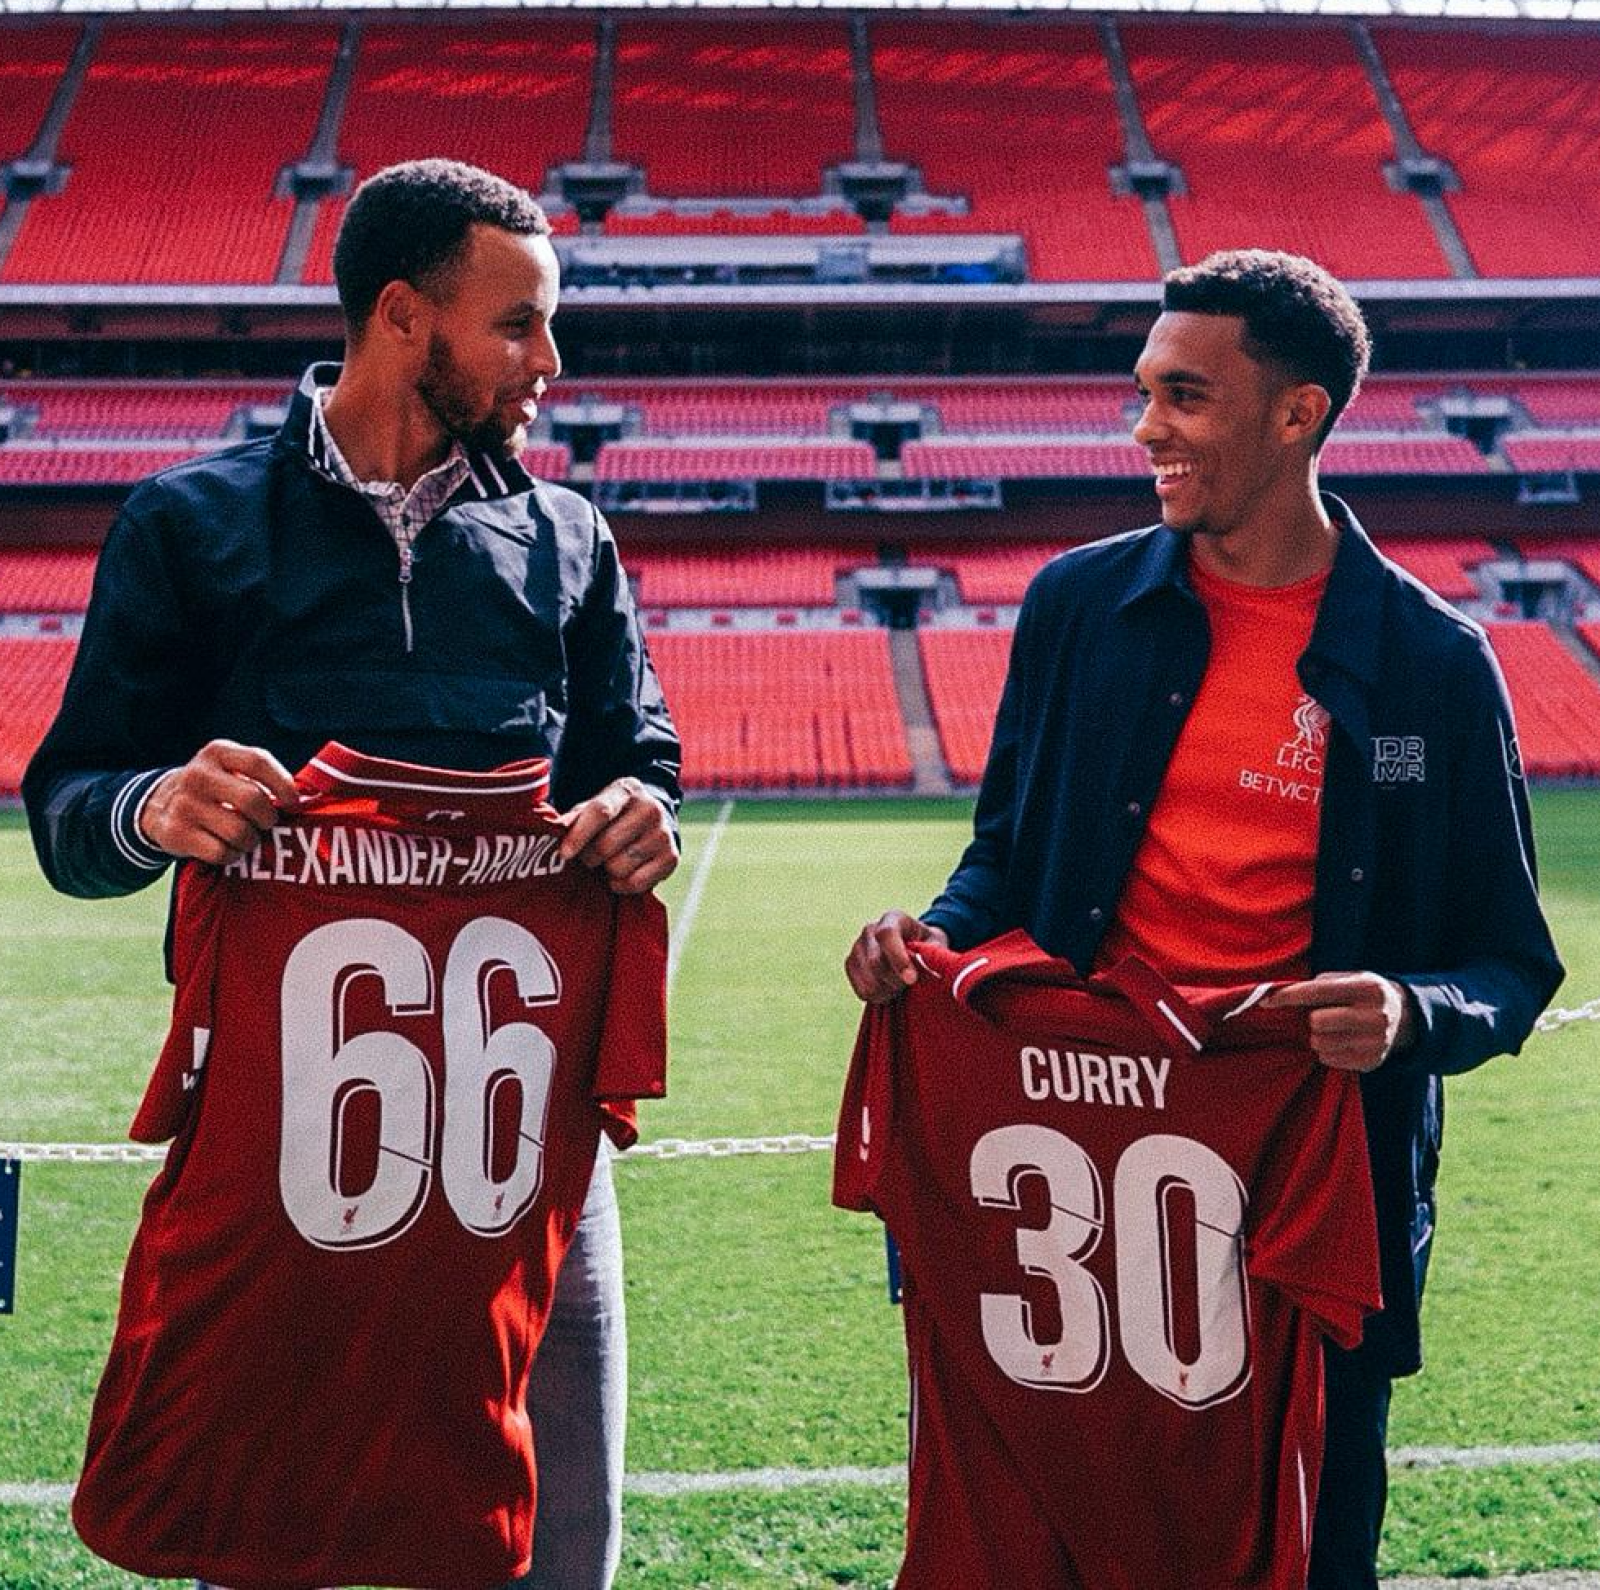 Curry and Alexander-Arnold traditionally traded jerseys after the two athletes met on the pitch in London